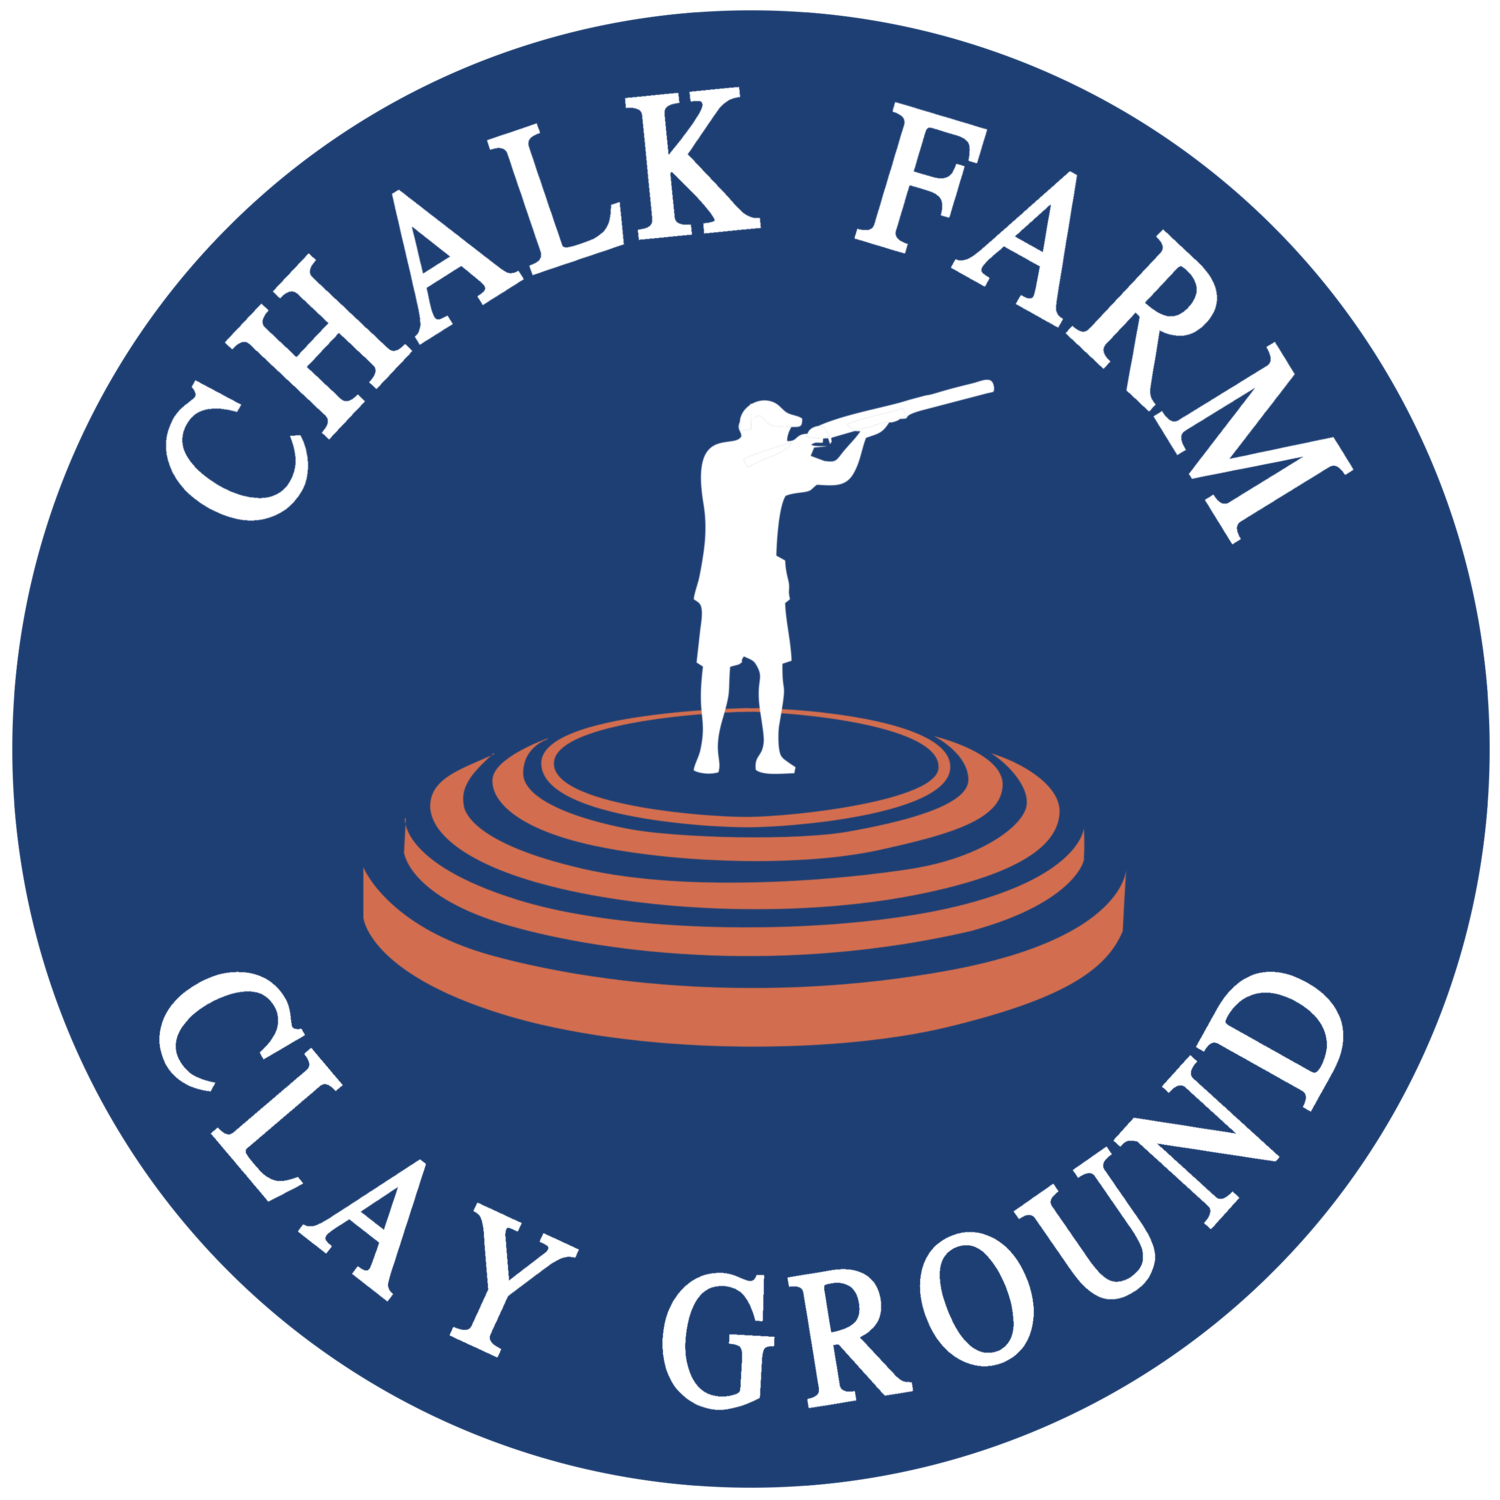 Chalk Farm Clay Ground near Kings Lynn, Norfolk